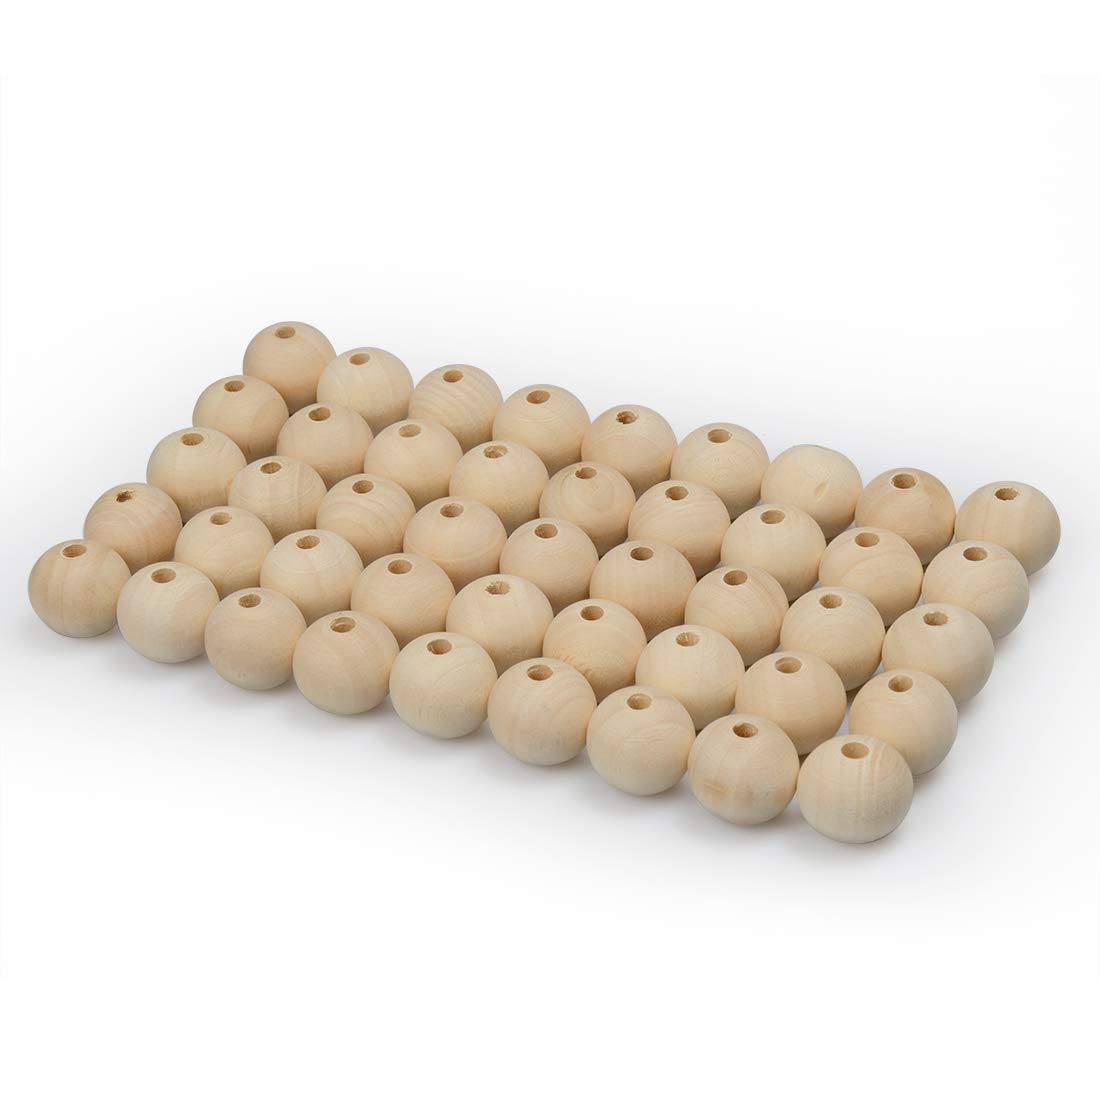 16mm Wood Beads 20mm Unfinished Natural Round Spacer Wooden Bead 180Pcs Total